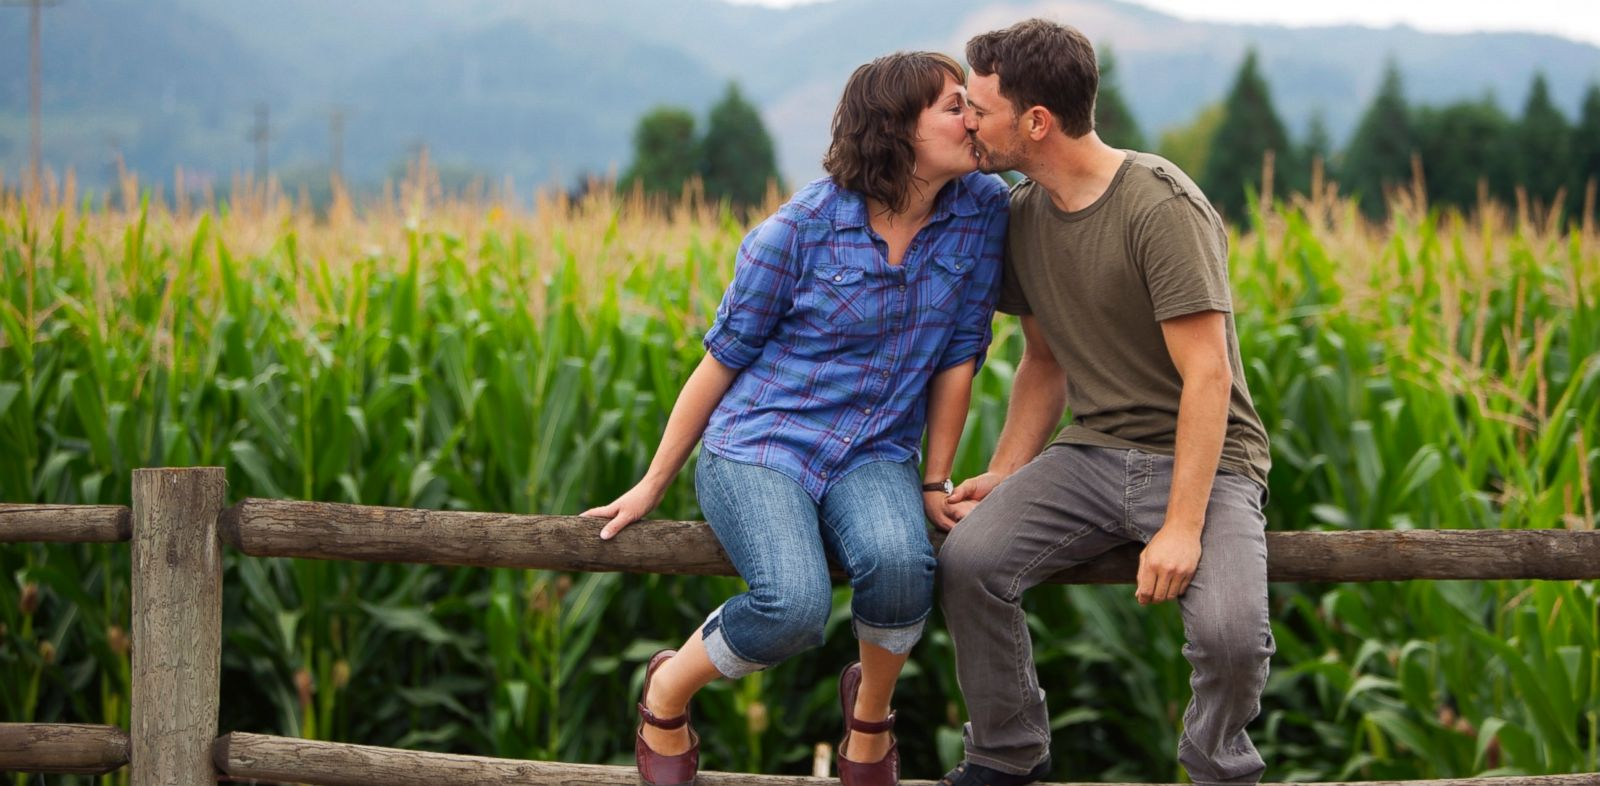 Dating sites for mich farmers